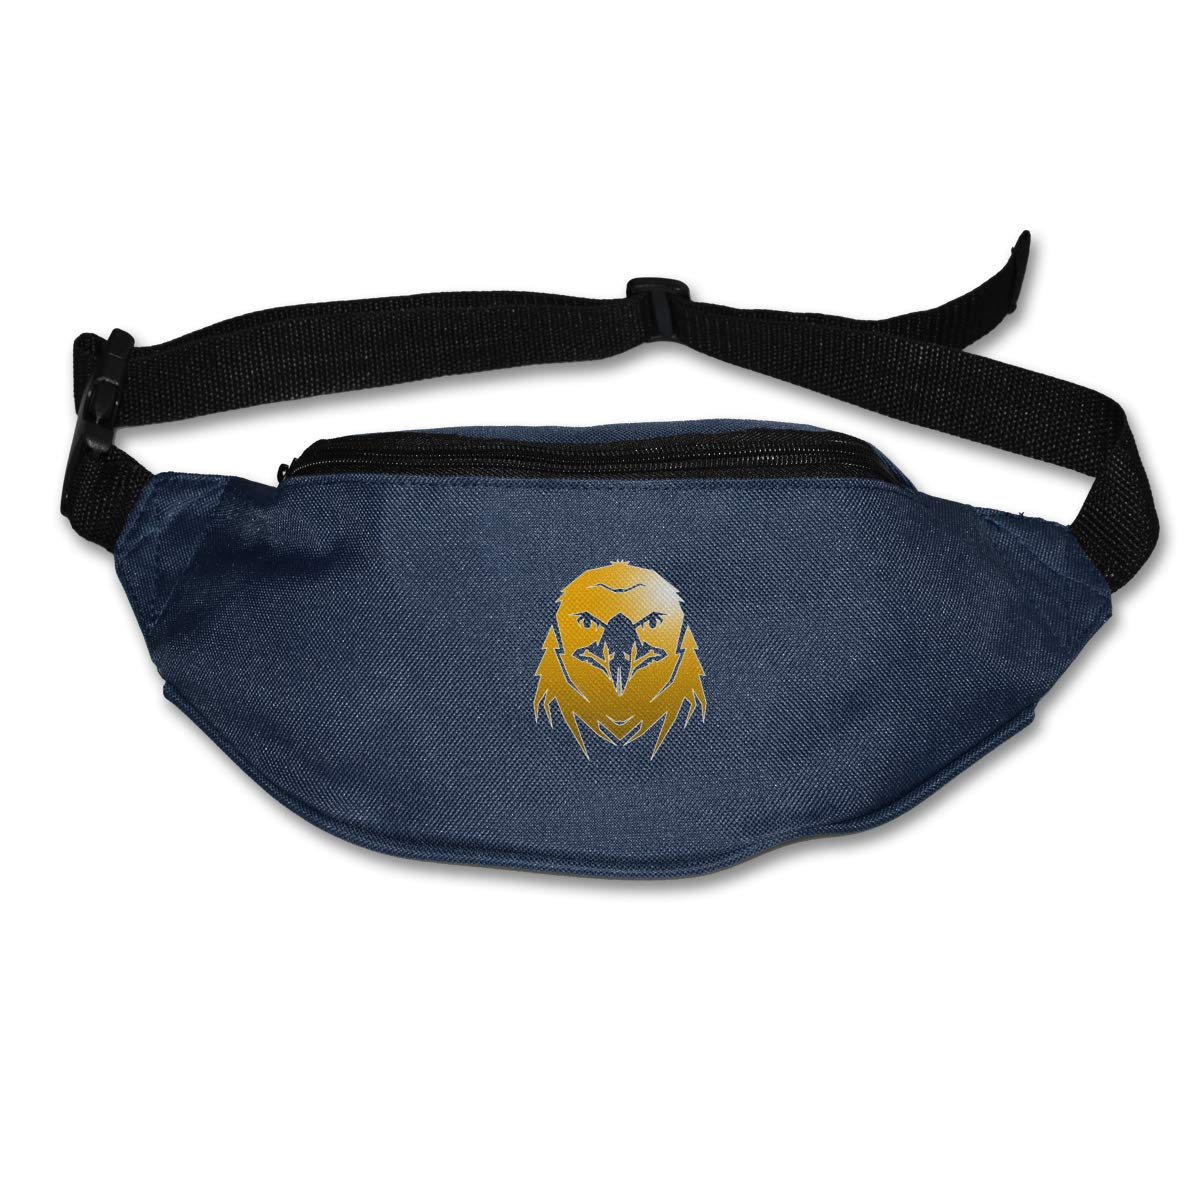 Golden Eagle Head Sport Waist Bag Fanny Pack Adjustable For Run